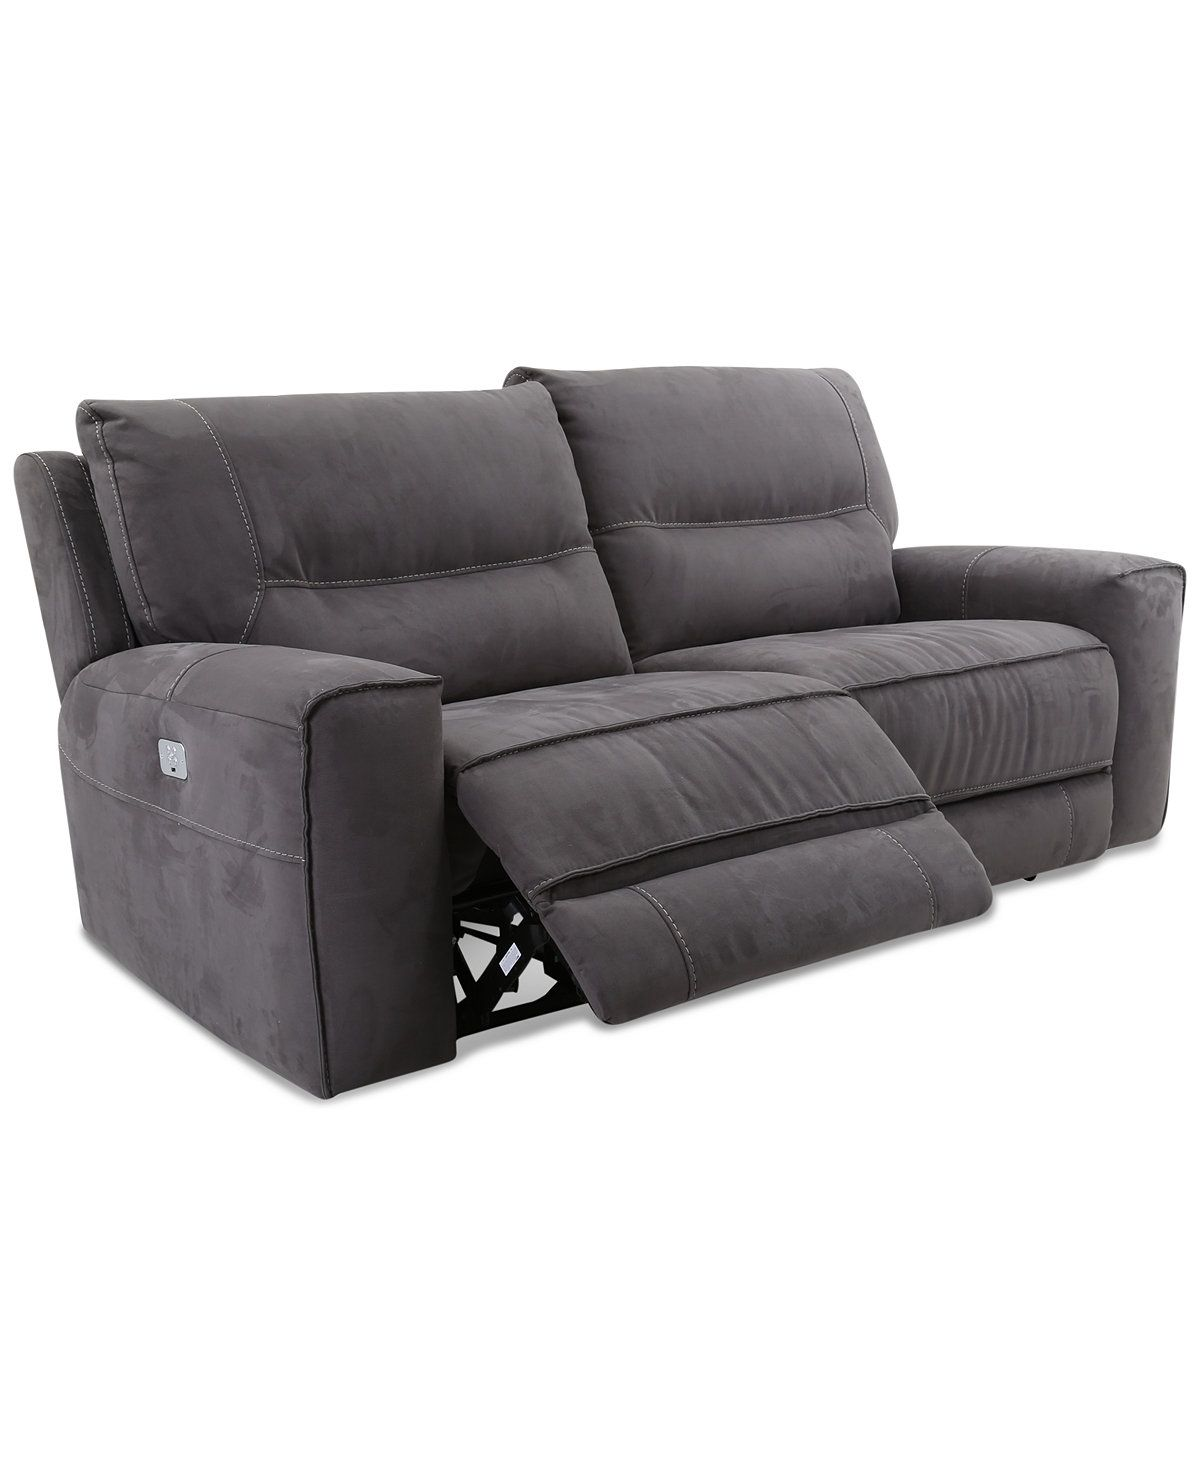 Sofa Relax Con Usb Genella Power Reclining Sofa With Power Headrest Only At Macy S